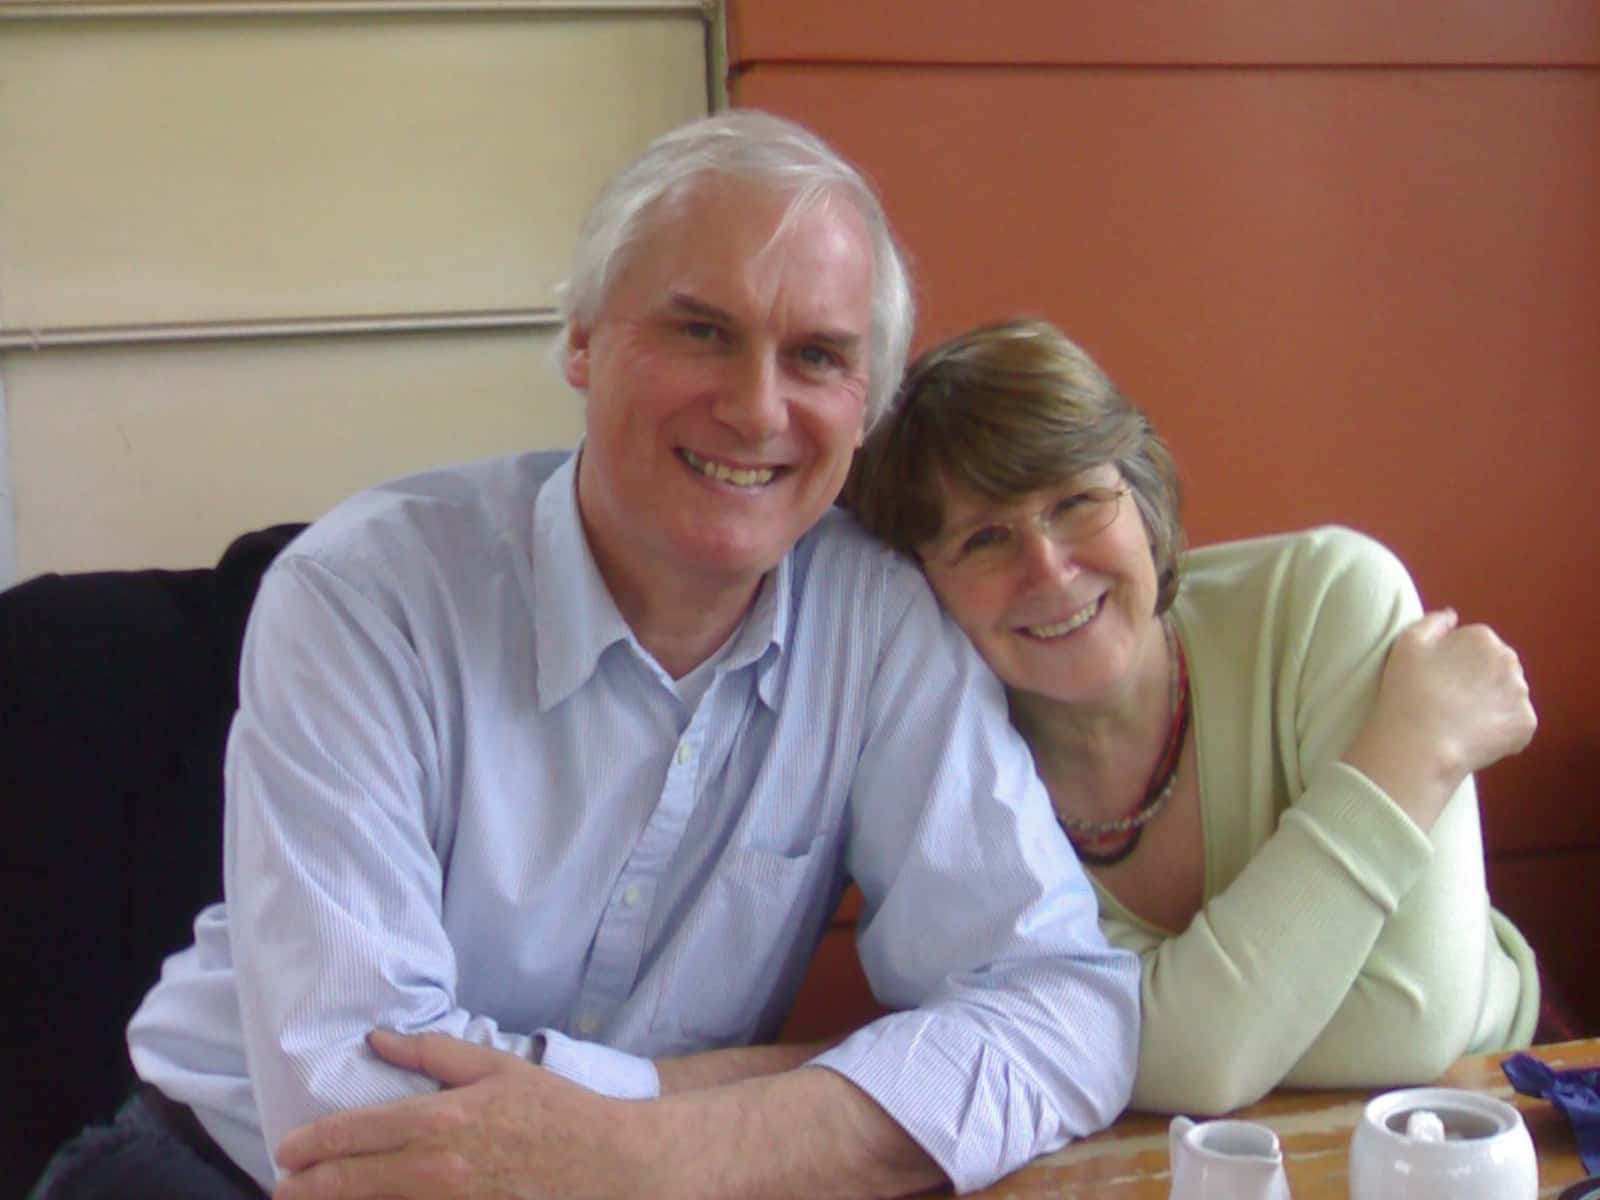 Jean & Chris from Monmouth, United Kingdom